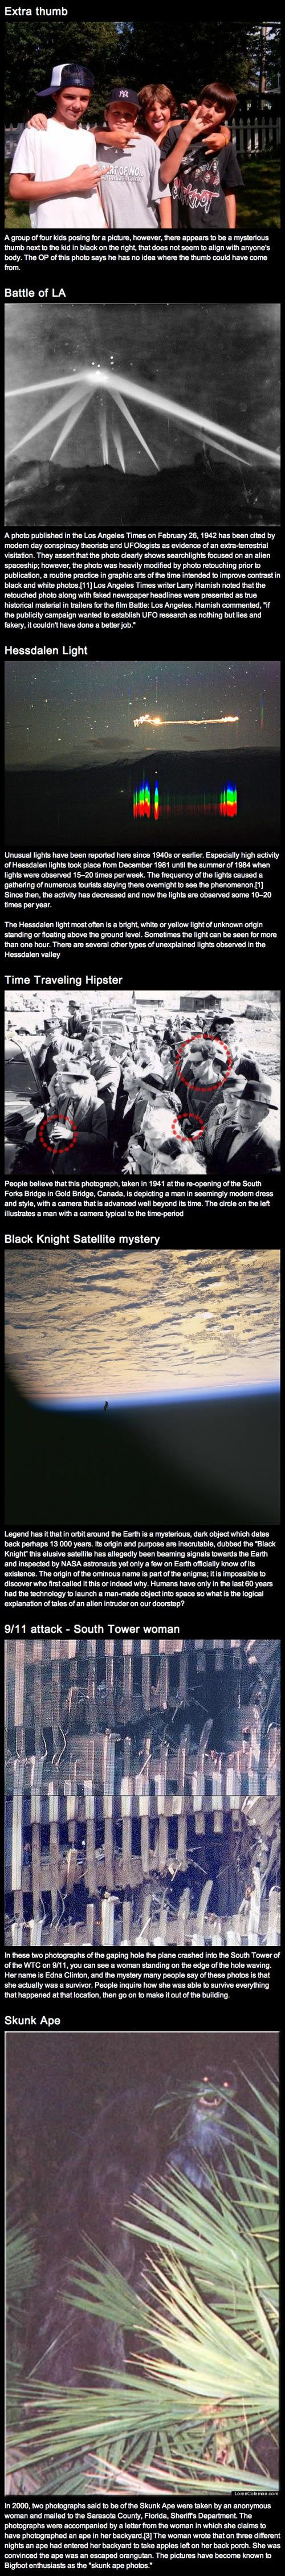 The most unexplained photos that exist... - The Meta Picture